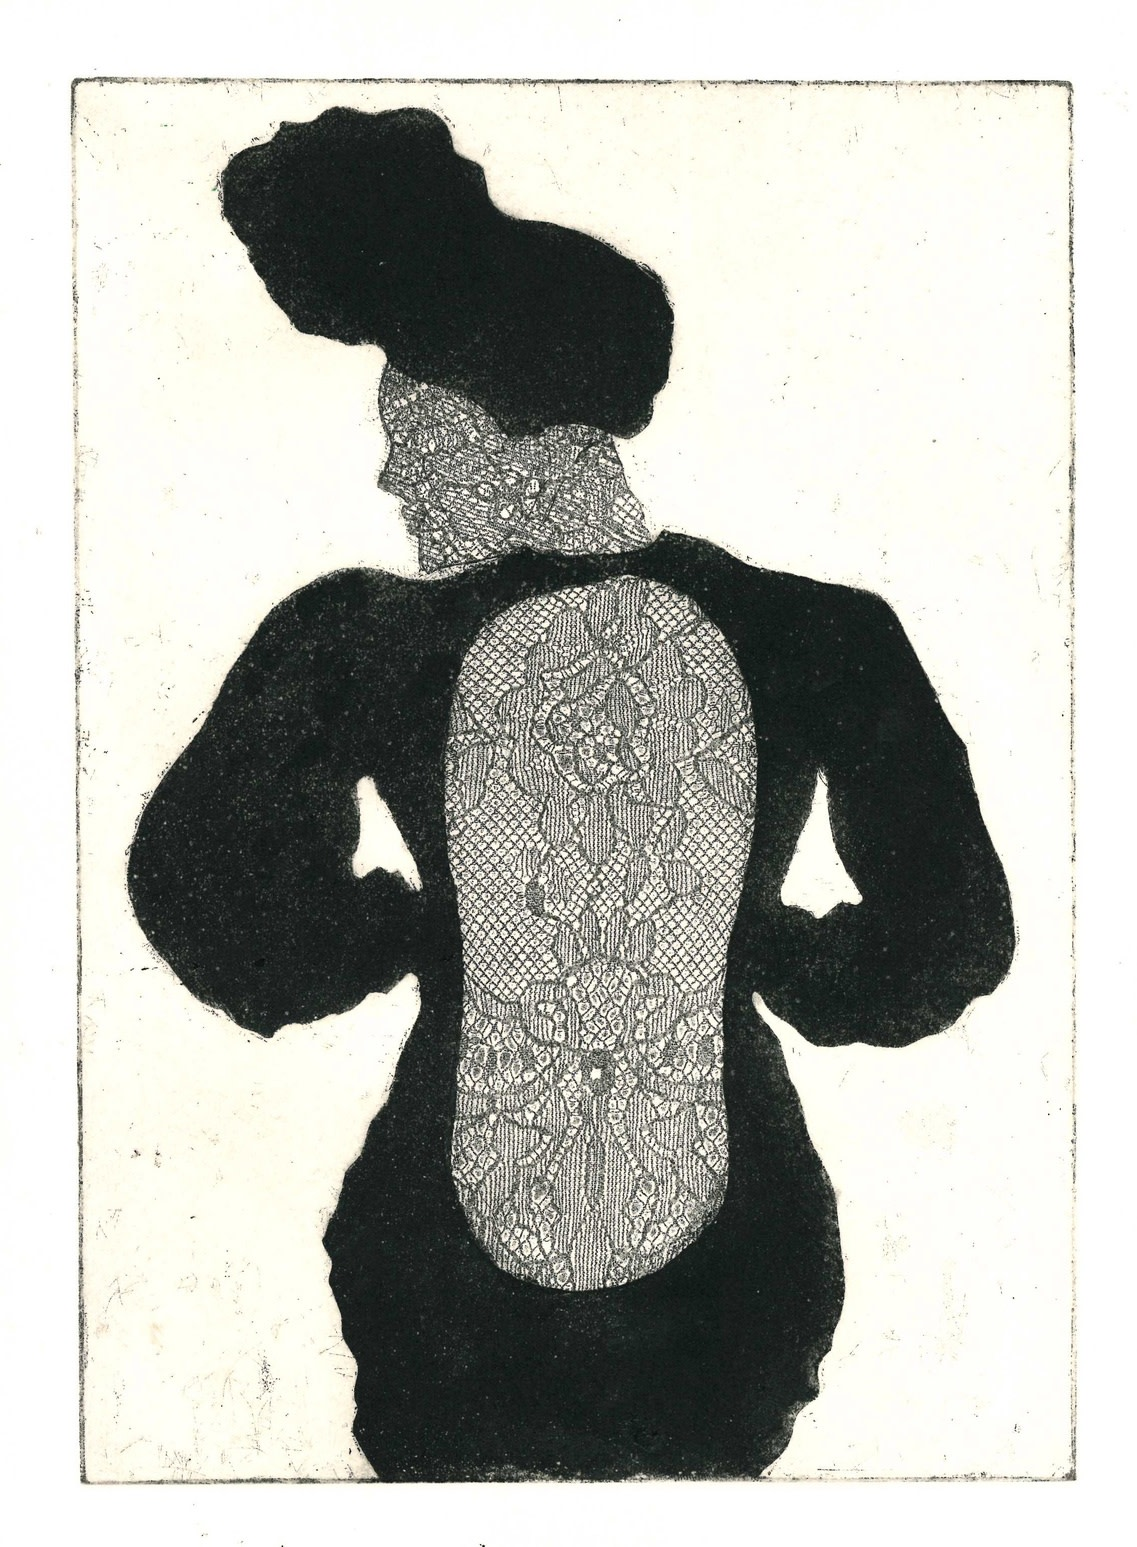 "<span class=""link fancybox-details-link""><a href=""/exhibitions/17/works/image_standalone678/"">View Detail Page</a></span><p><strong>Paul Gale</strong></p><p>Lady in Black</p><p>etching and aquatint, ed of 10</p><p>35 x 25cm</p><p>£175 framed</p><p>£60 unframed</p>"